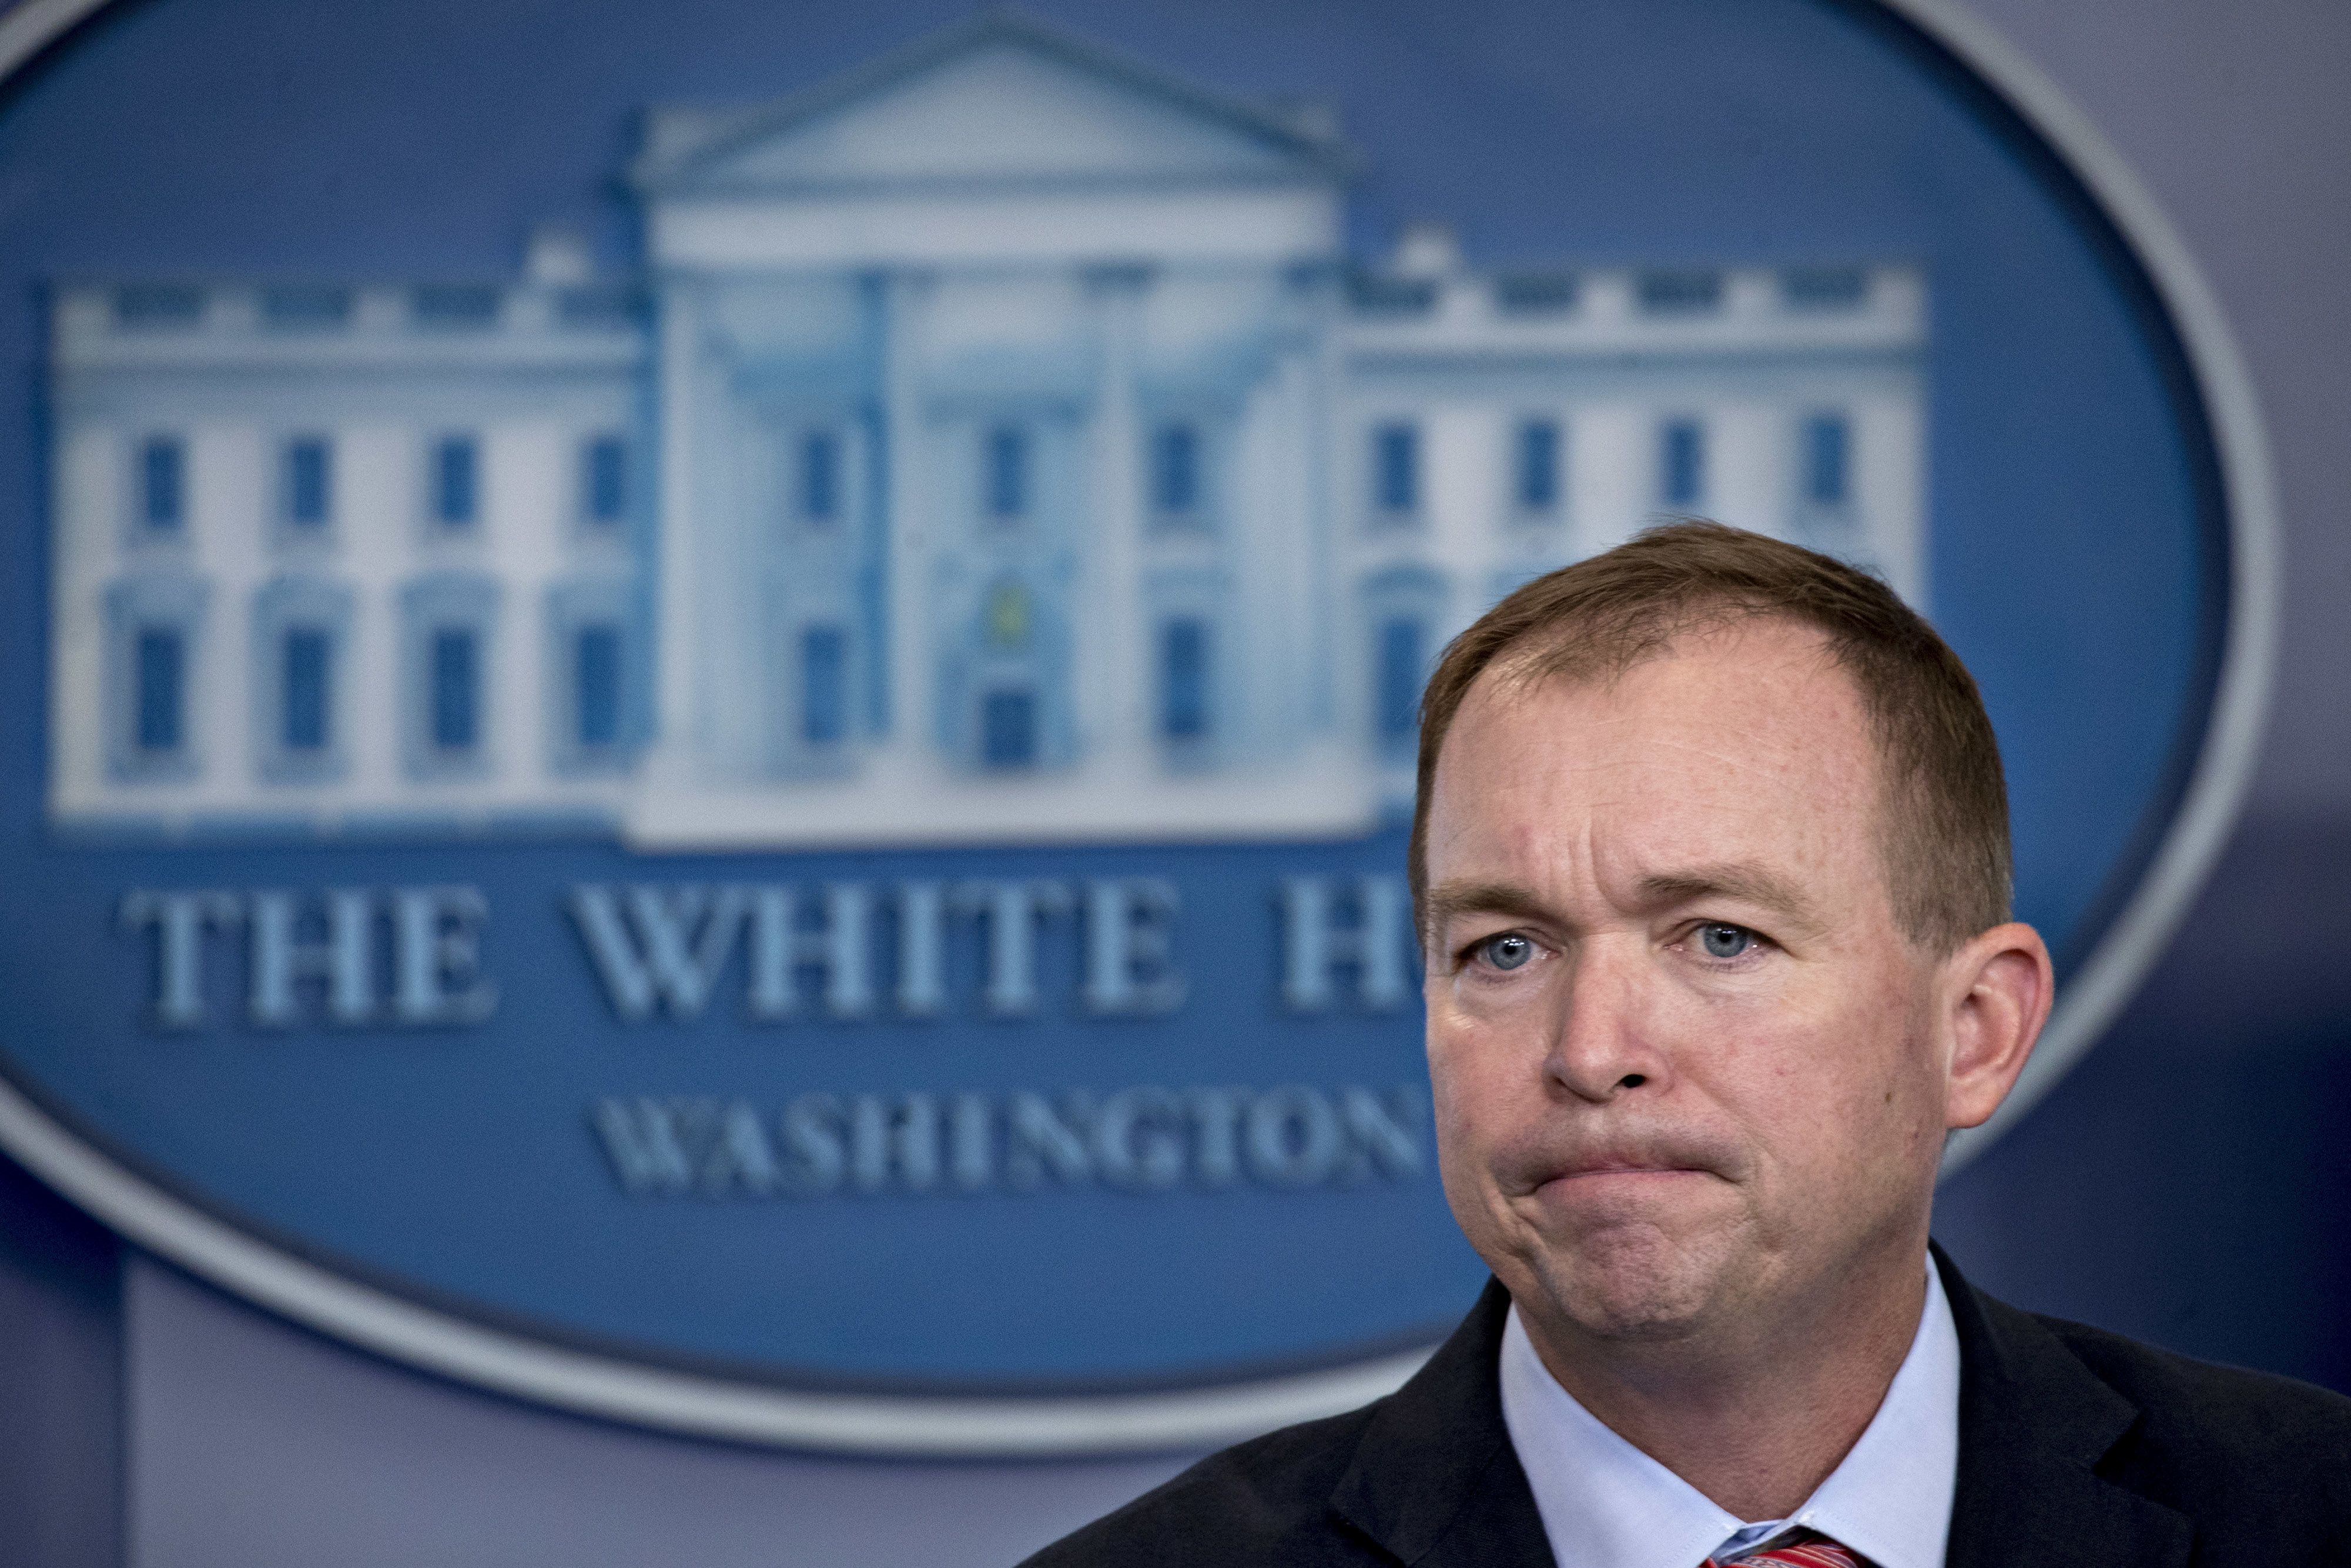 Mick Mulvaney, director of the Office of Management and Budget (OMB), pauses while speaking during a White House press briefing in Washington, D.C., U.S., on Thursday, July 20, 2017. Mulvaney has called Trump's tax-cutting approach to the economy MAGAnomics, a spin on Trump's campaign slogan, 'Make America Great Again' and has repeatedly attacked the Congressional Budget Office (CBO) for its estimates on the impact of Republicans' plans to repeal and replace Obamacare. Photographer: Andrew Harrer/Bloomberg via Getty Images